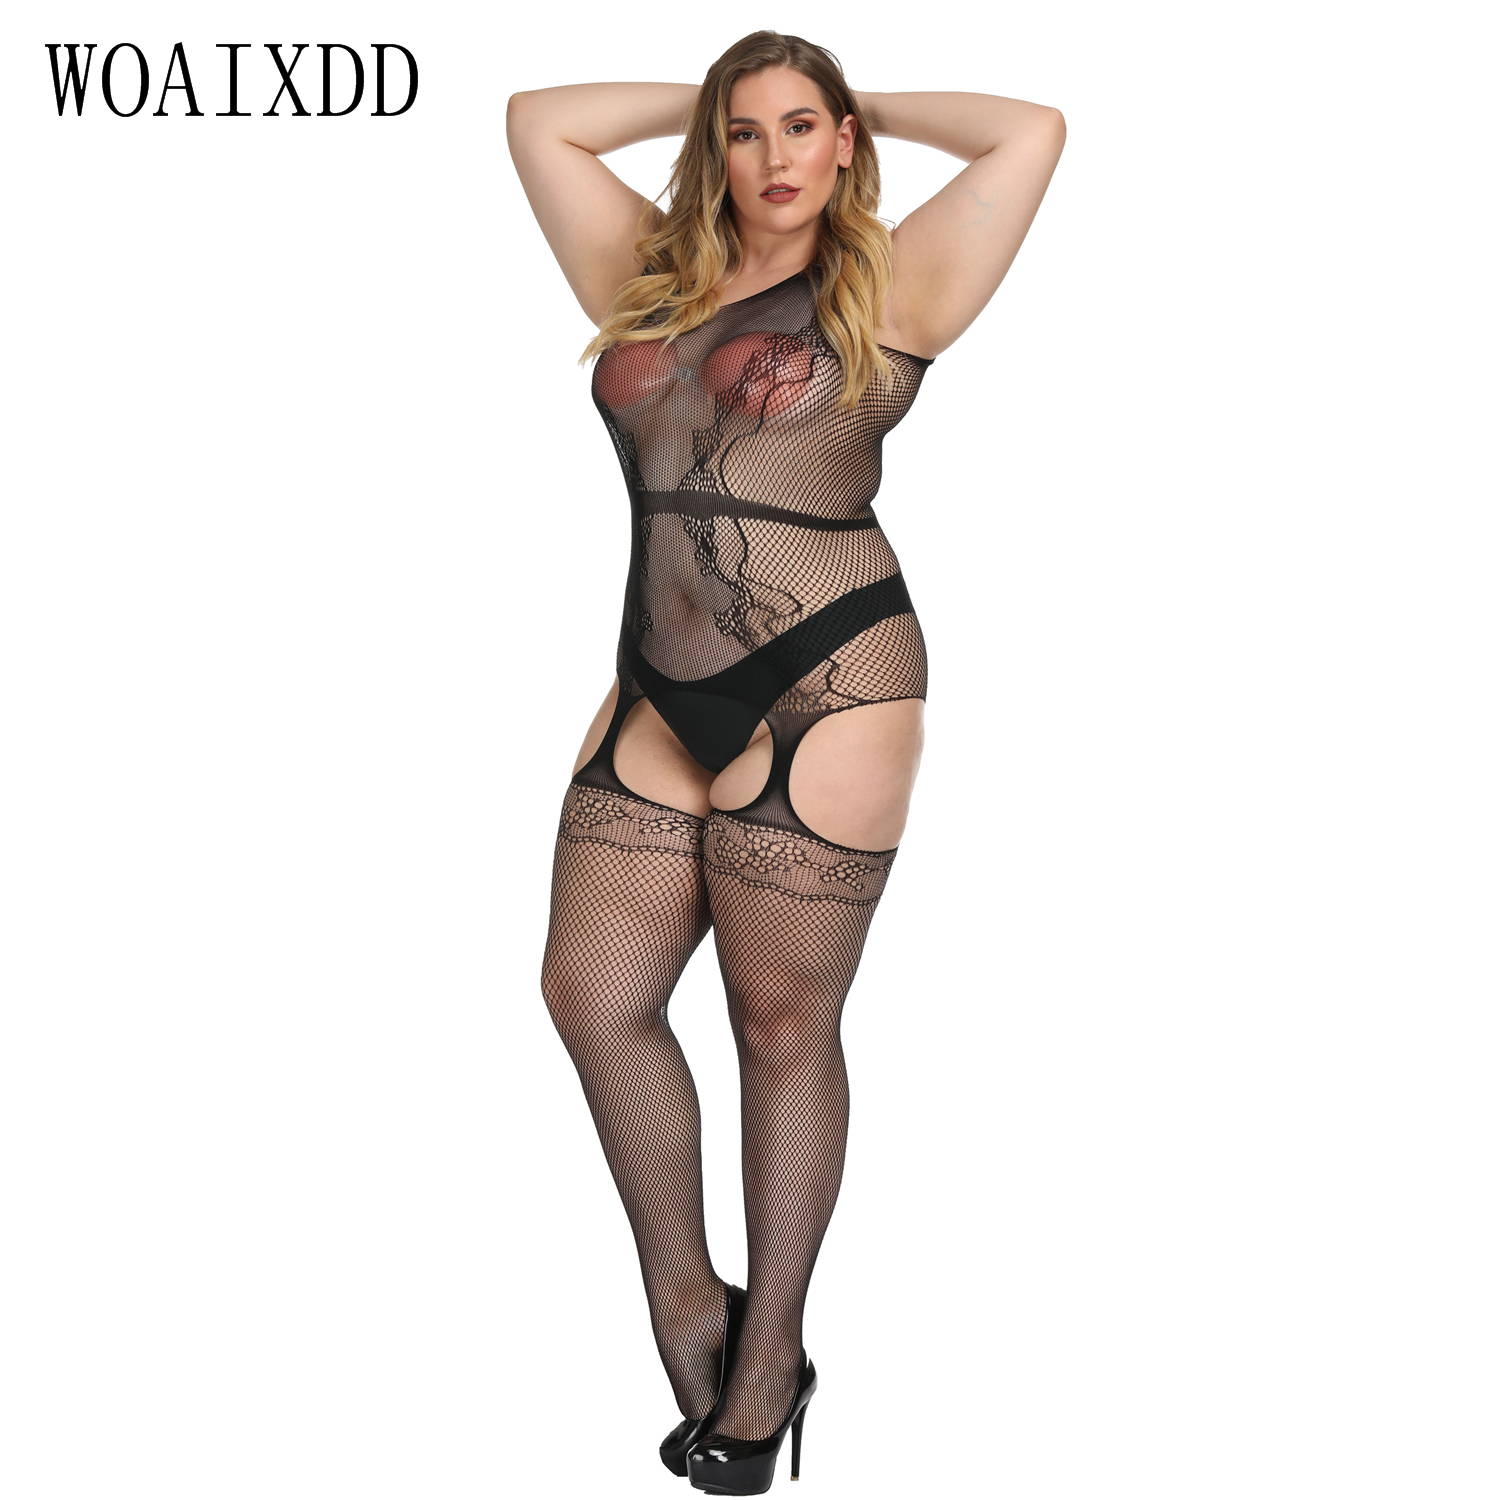 8 styles <font><b>XXXL</b></font> Plus Size Bodysuits Women <font><b>Erotic</b></font> <font><b>Sexy</b></font> <font><b>Lingerie</b></font> Hot Bodystocking Costumes Open Crotch Babydolls <font><b>Erotic</b></font> Underwear image